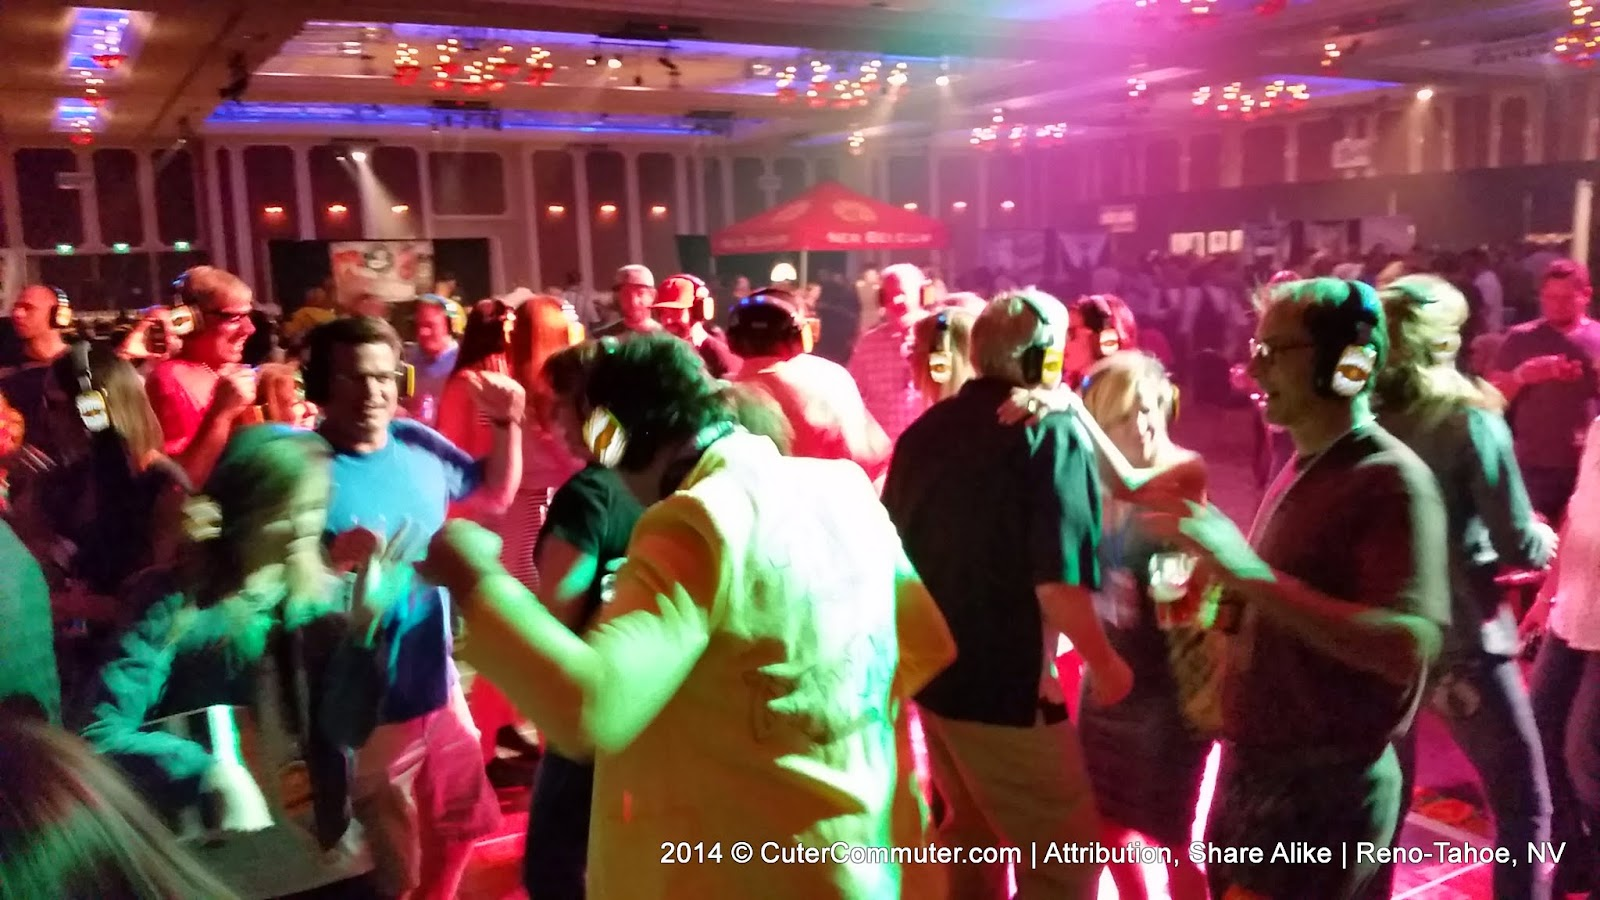 People dancing to music through headphones on the silent disco floor.